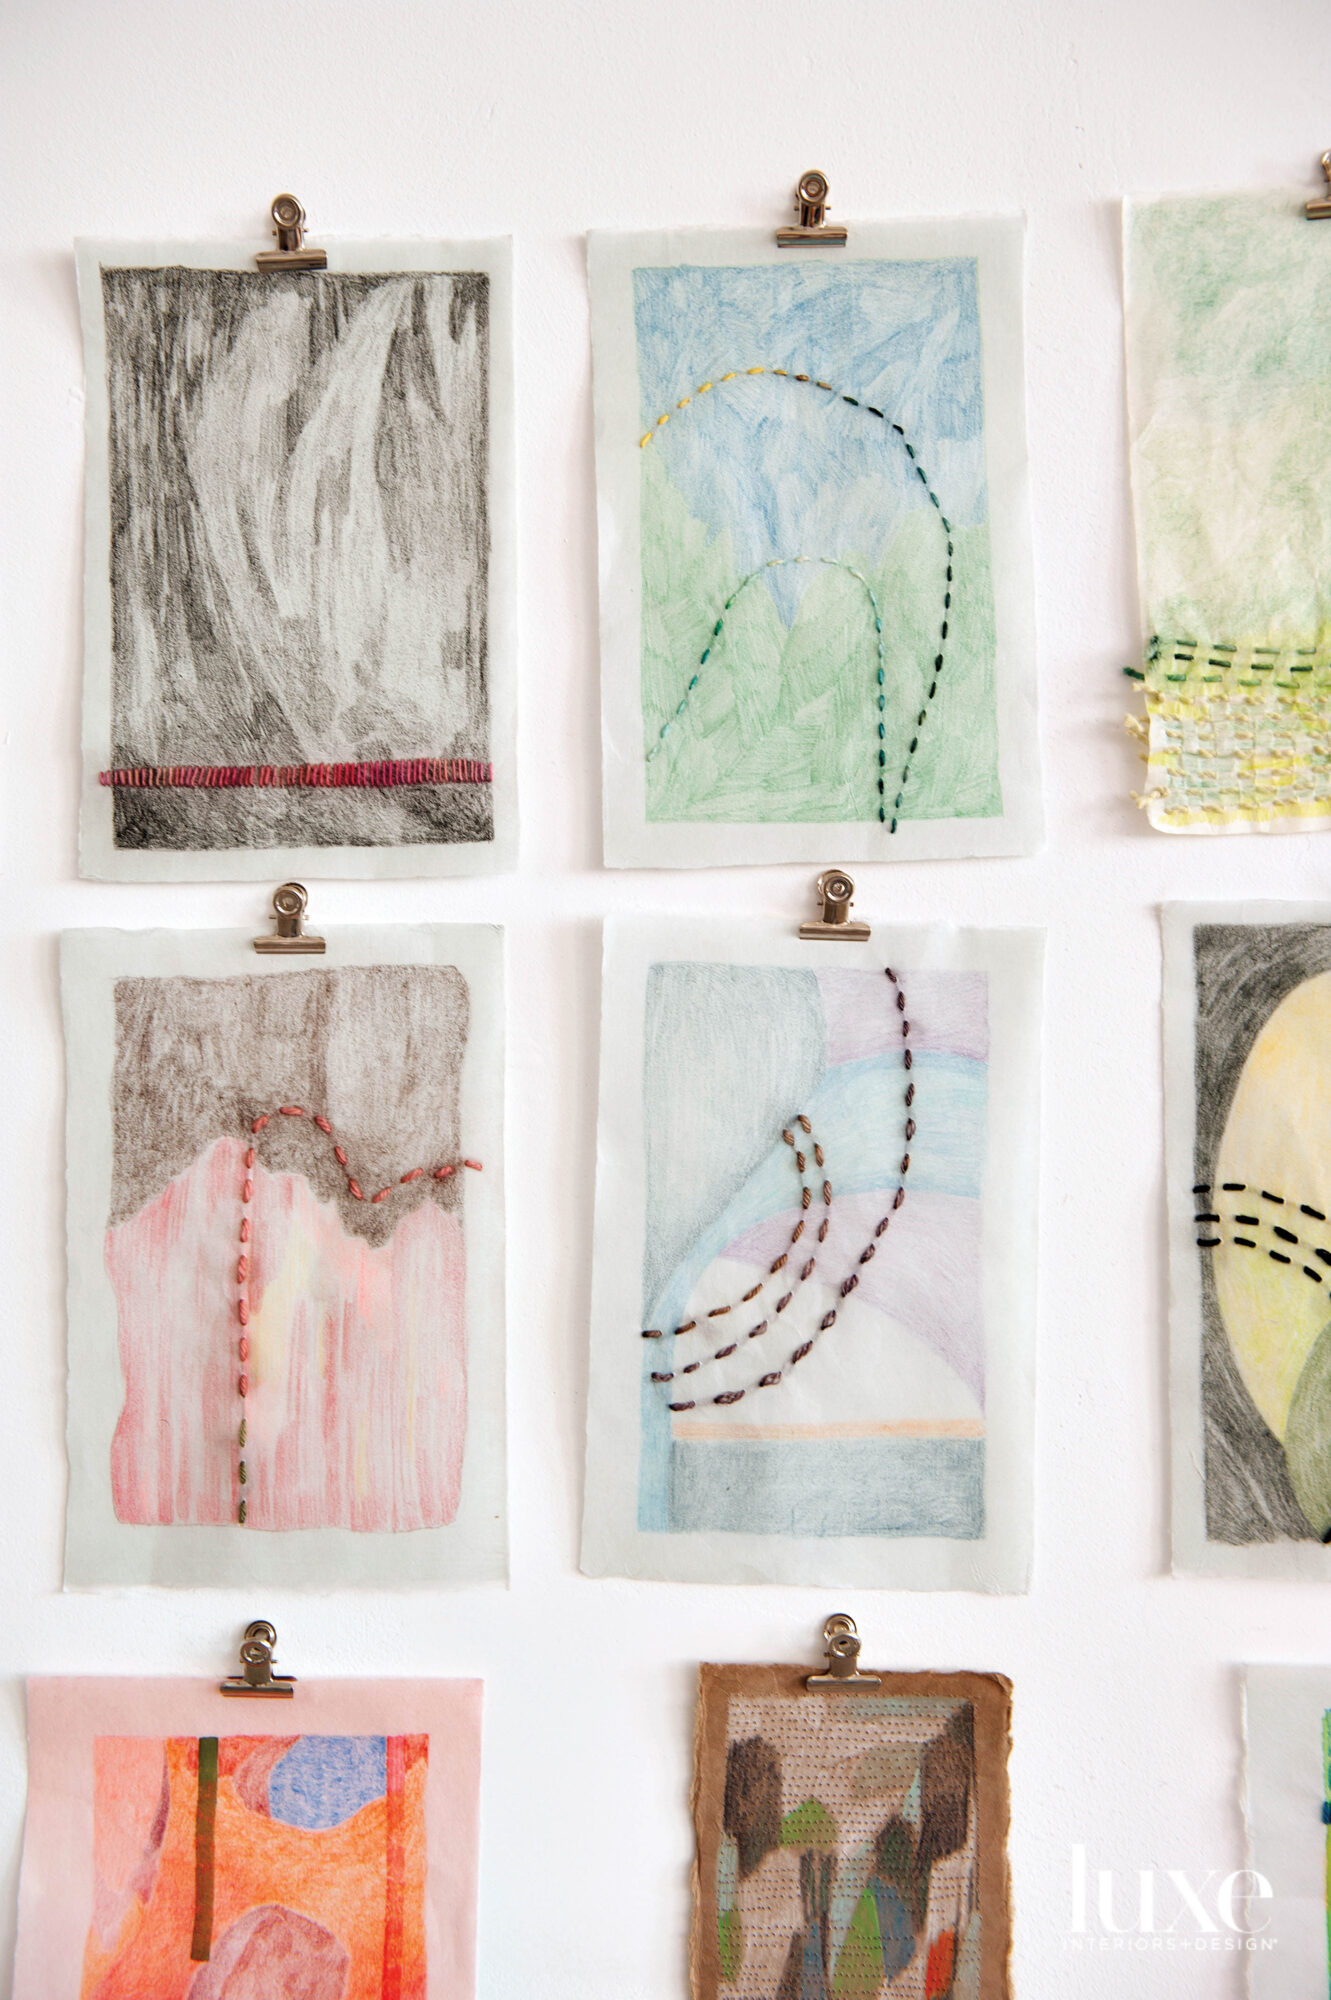 Nine small drawings with yarn stitched into the paper.